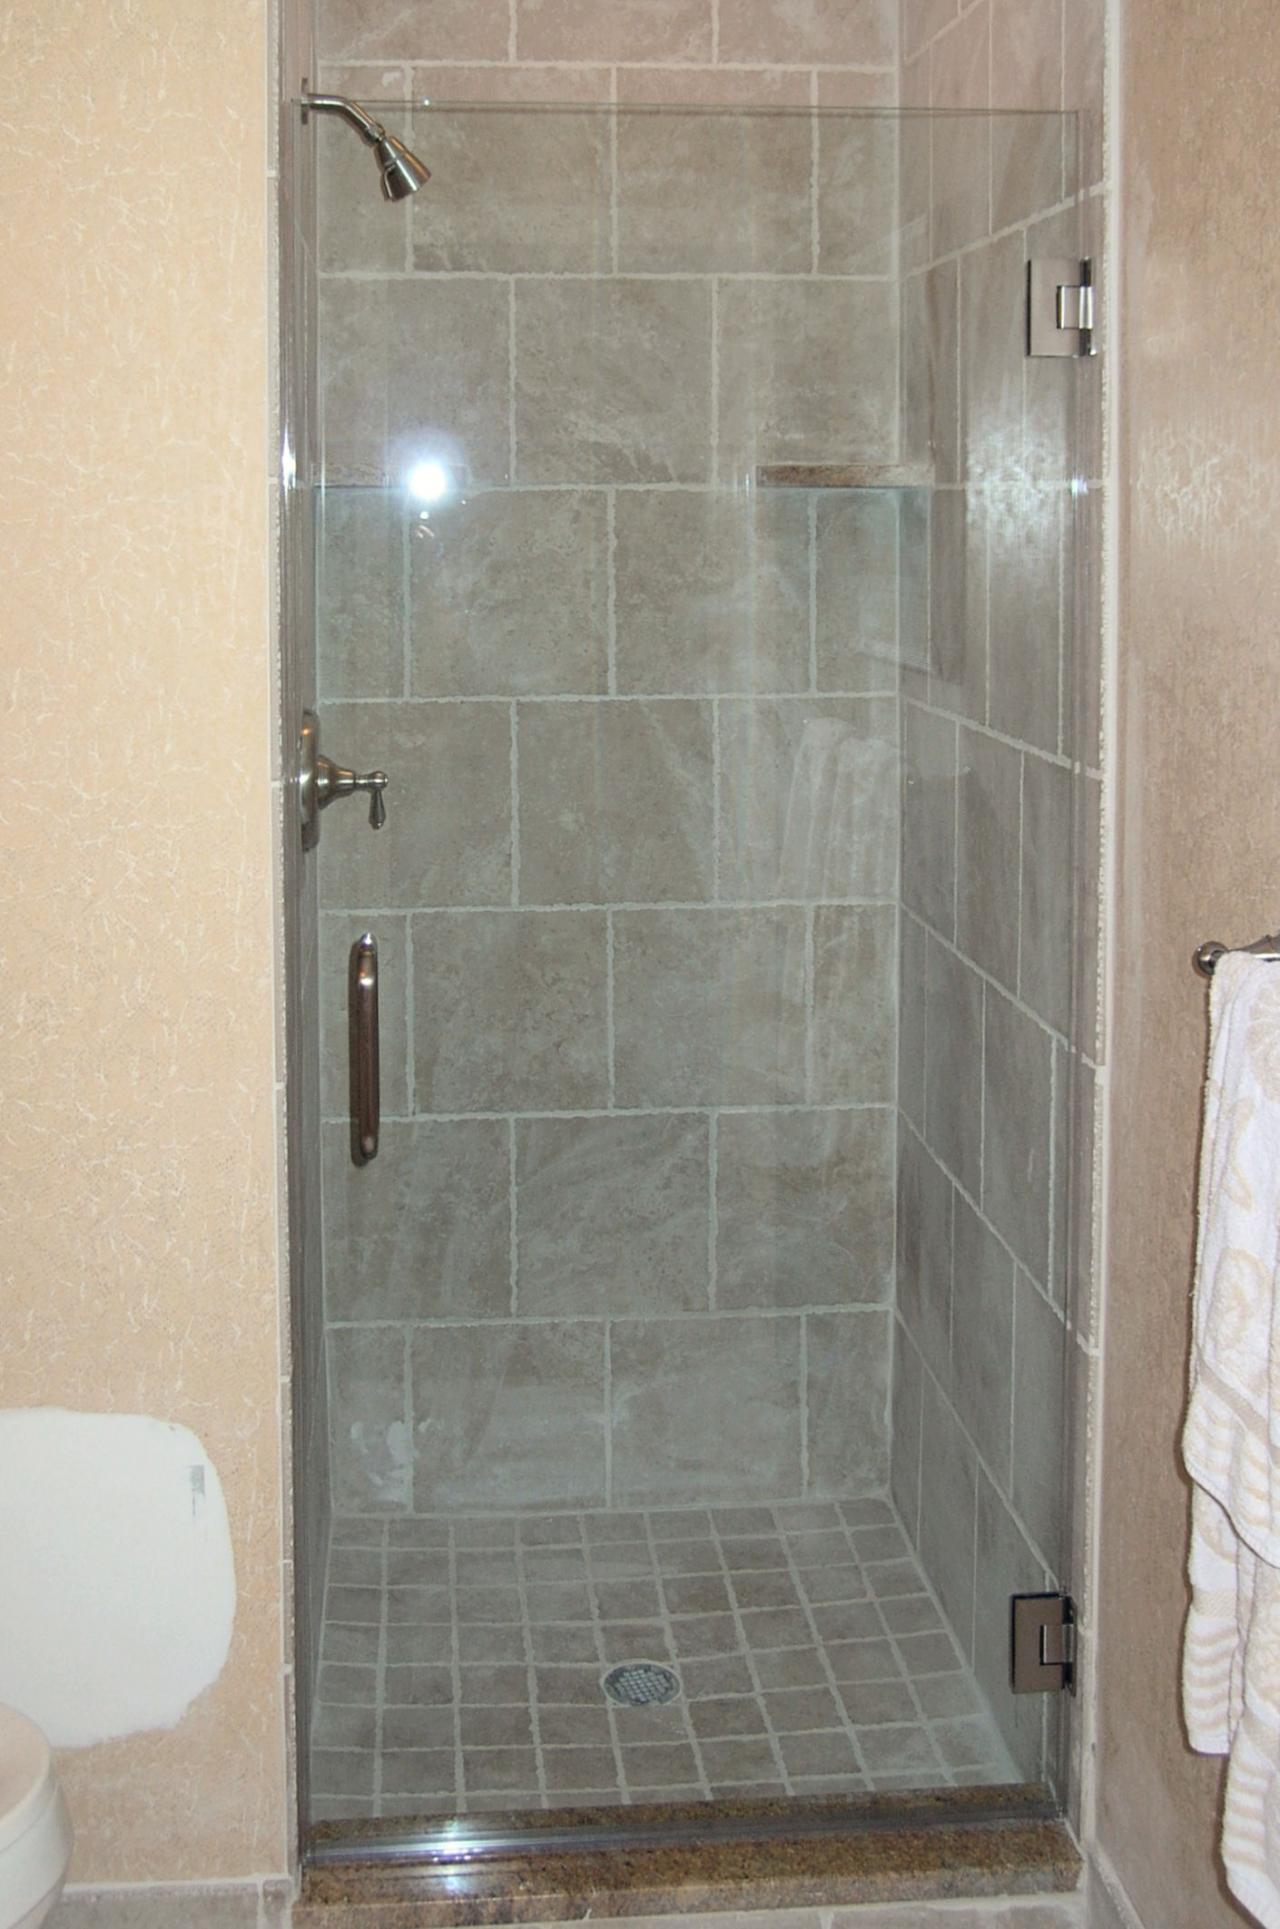 Shower Door ALL GLASS AND SHOWERS